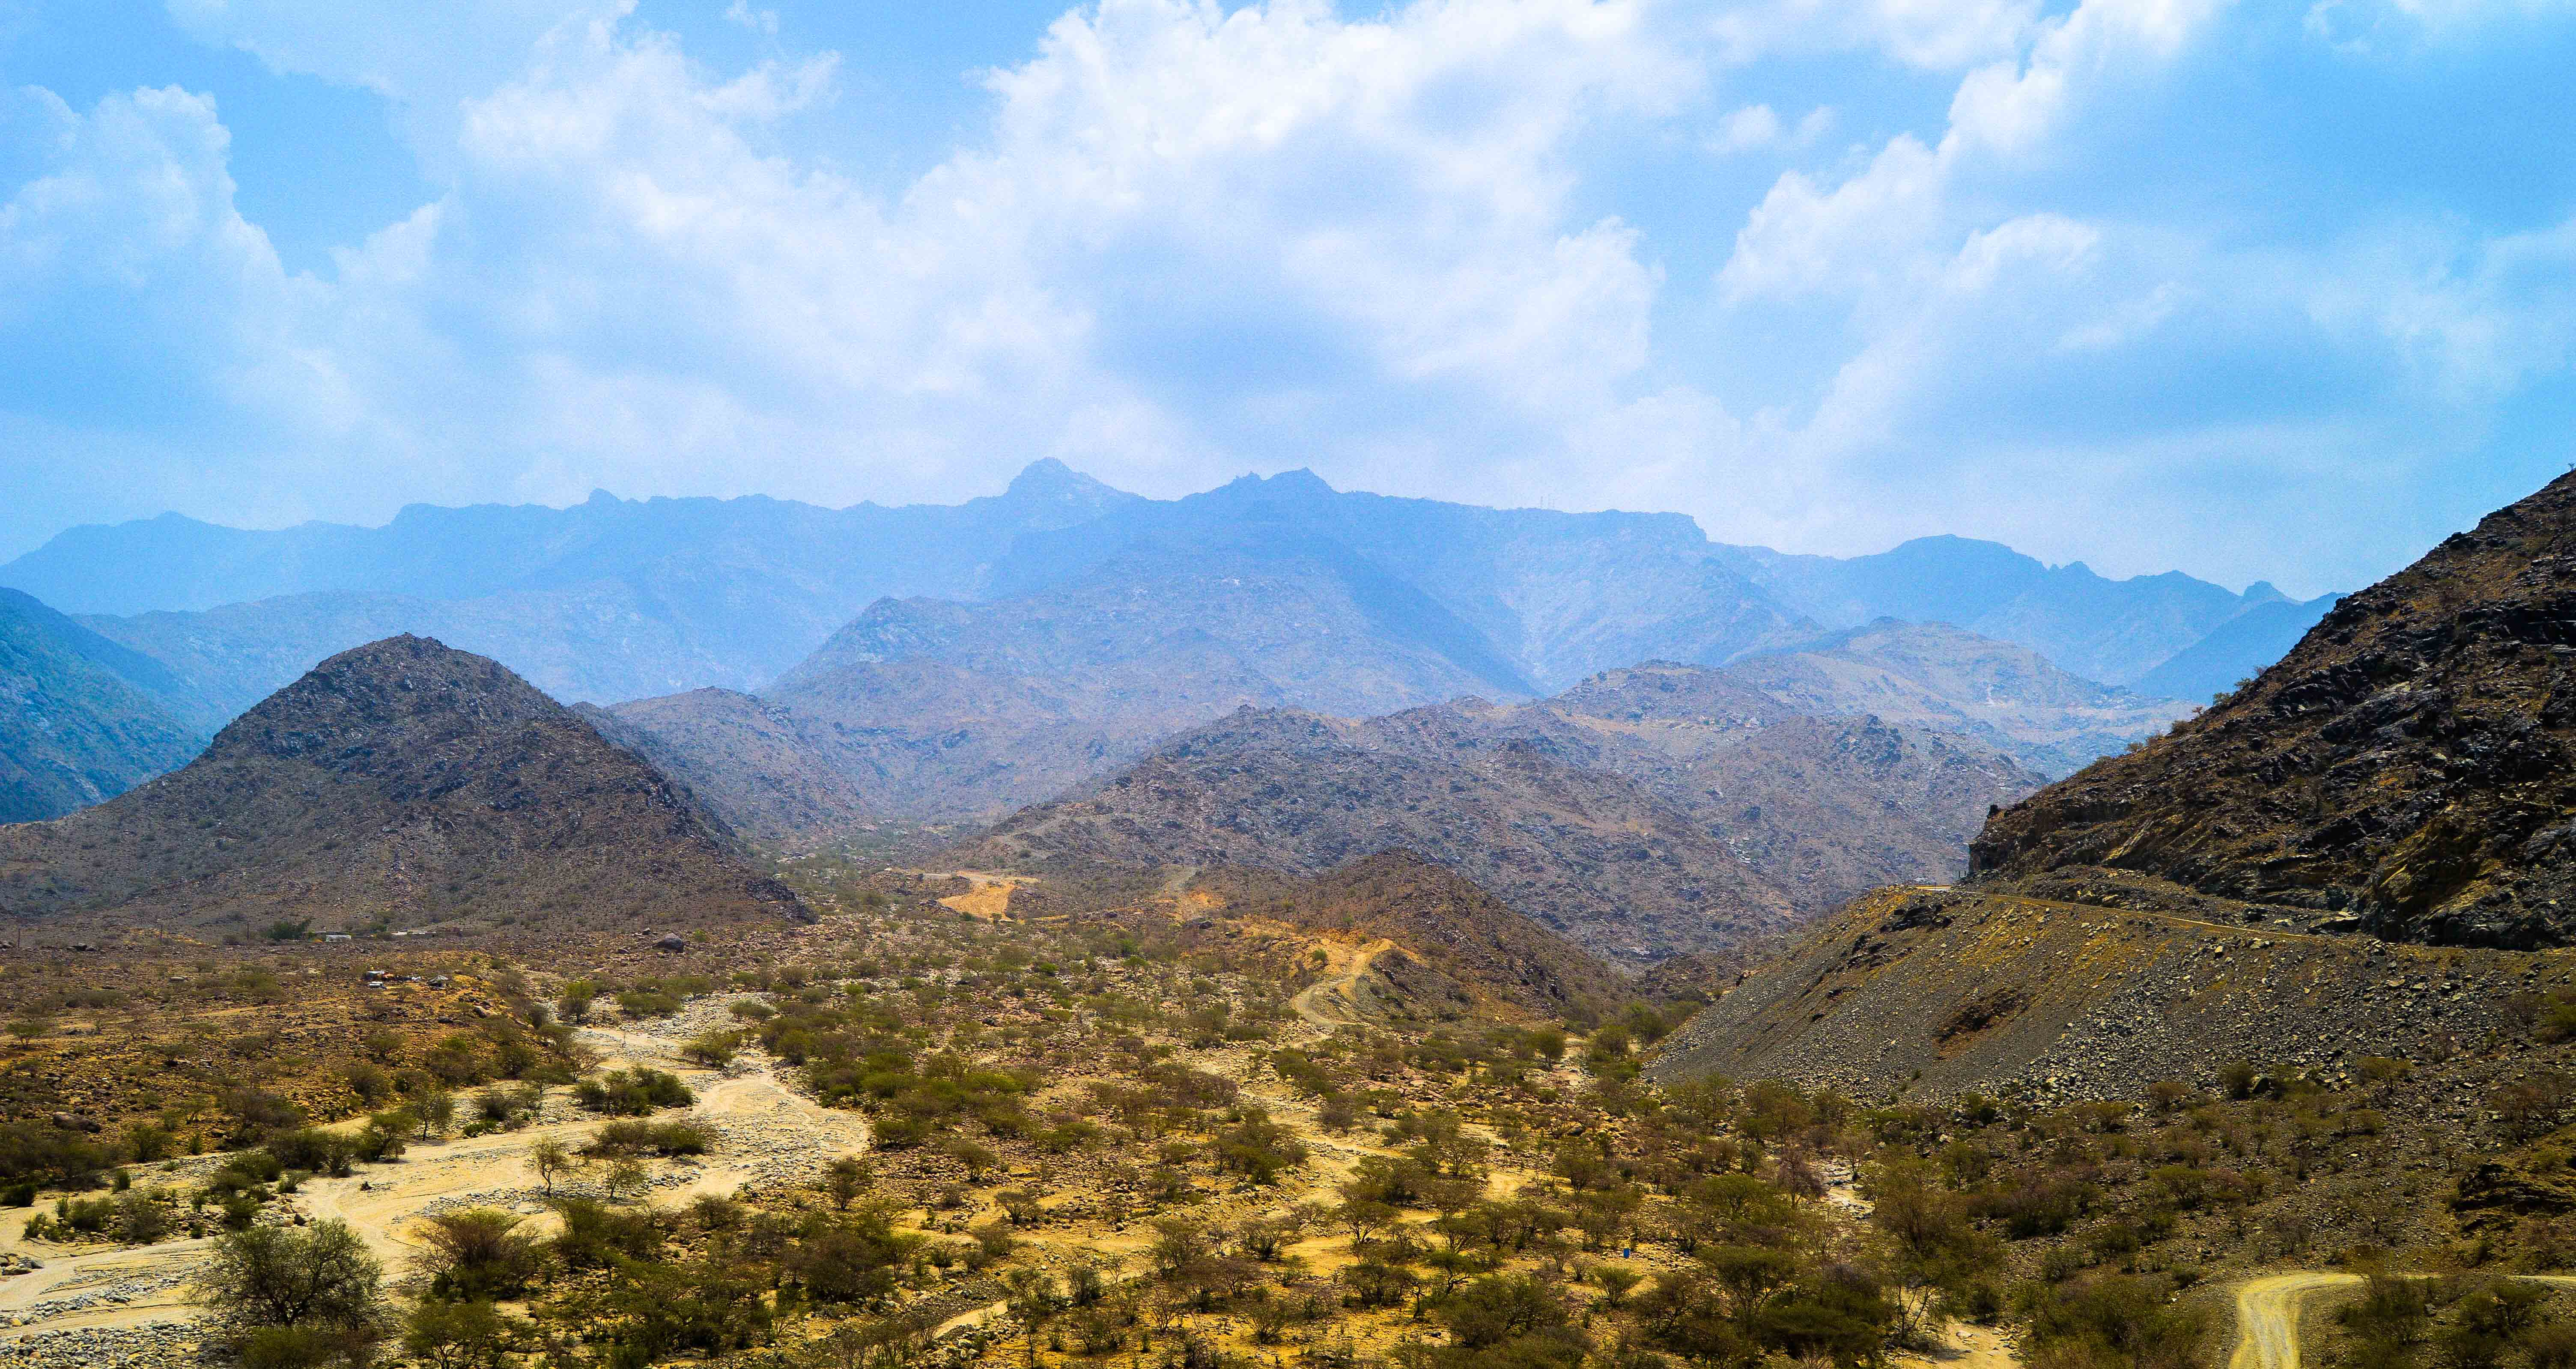 Mountains and greenery in Al-Bahah Province (photo: Alan Morrissey)